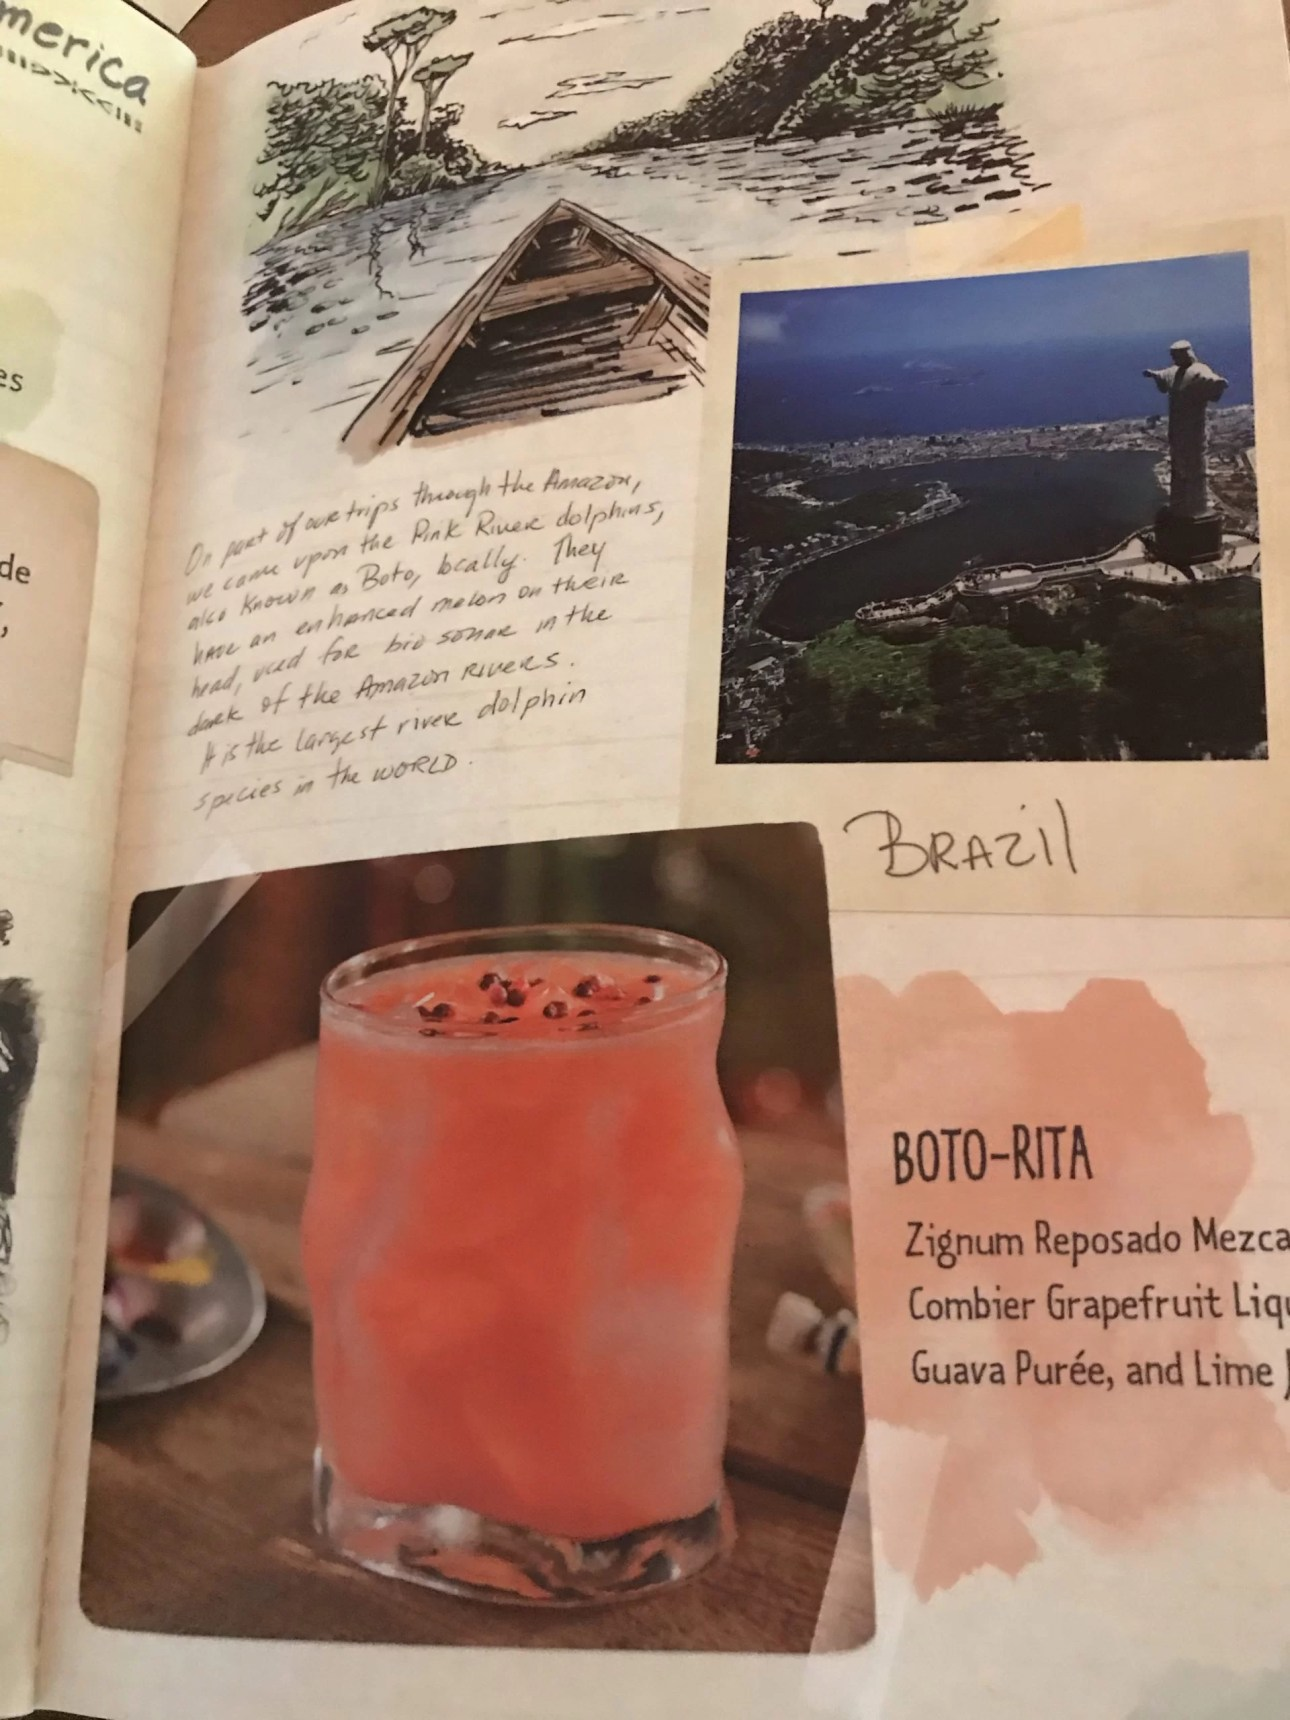 Boto-Rita in Cocktail Menu at Nomad Lounge